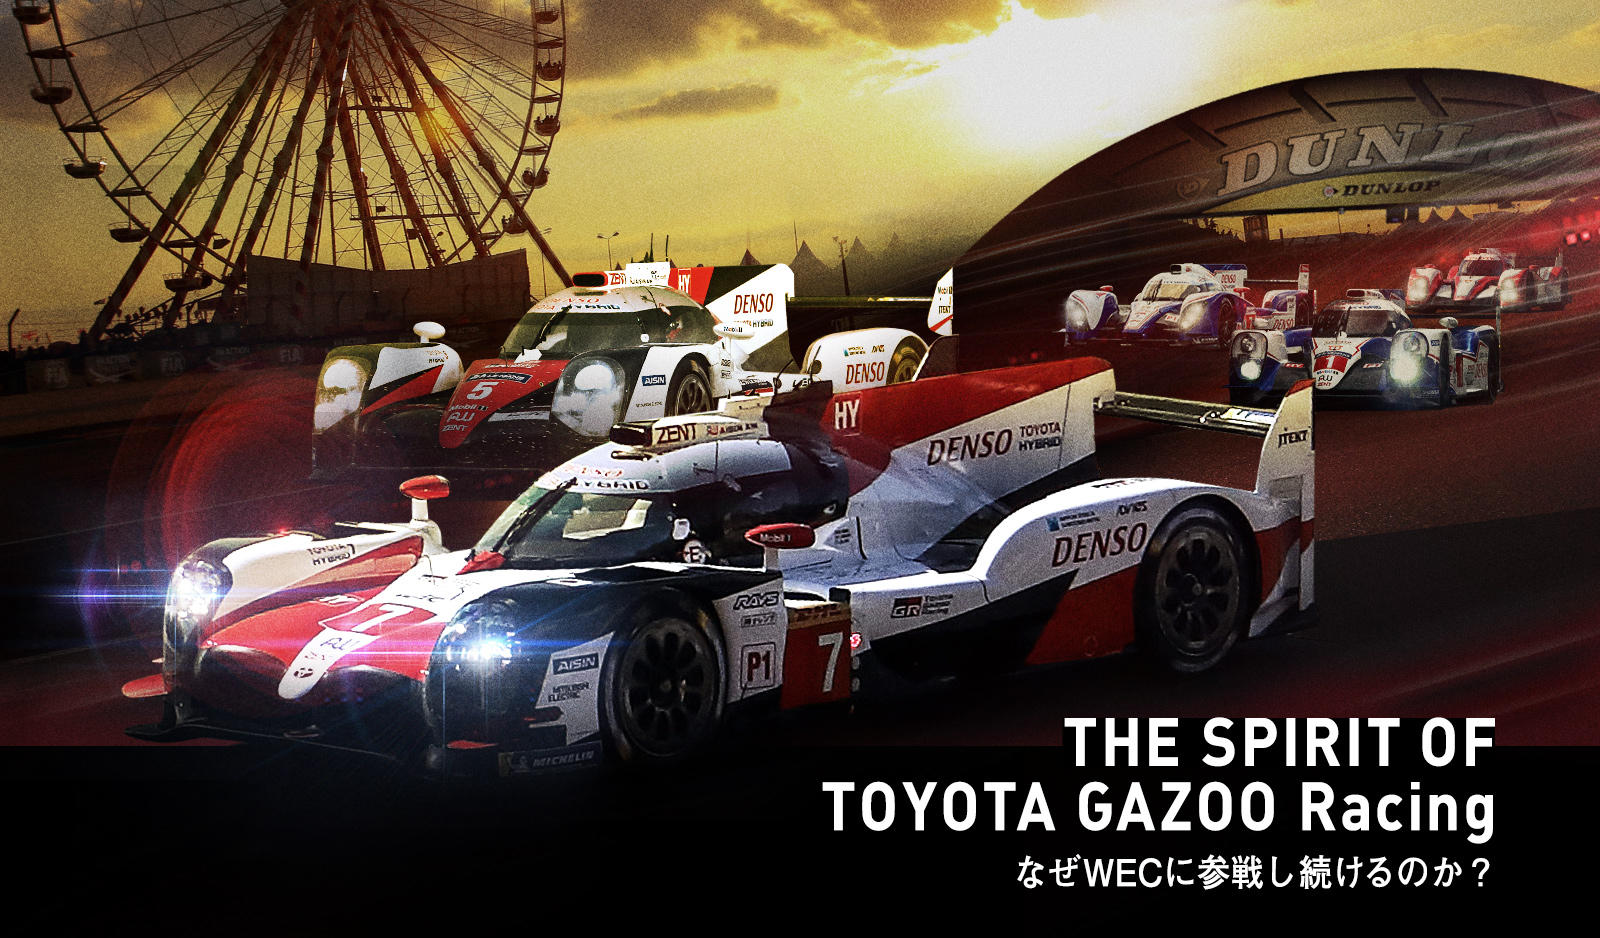 THE SPIRIT OF TOYOTA GAZOO Racing 〜なぜWECに参戦し続けるのか?〜